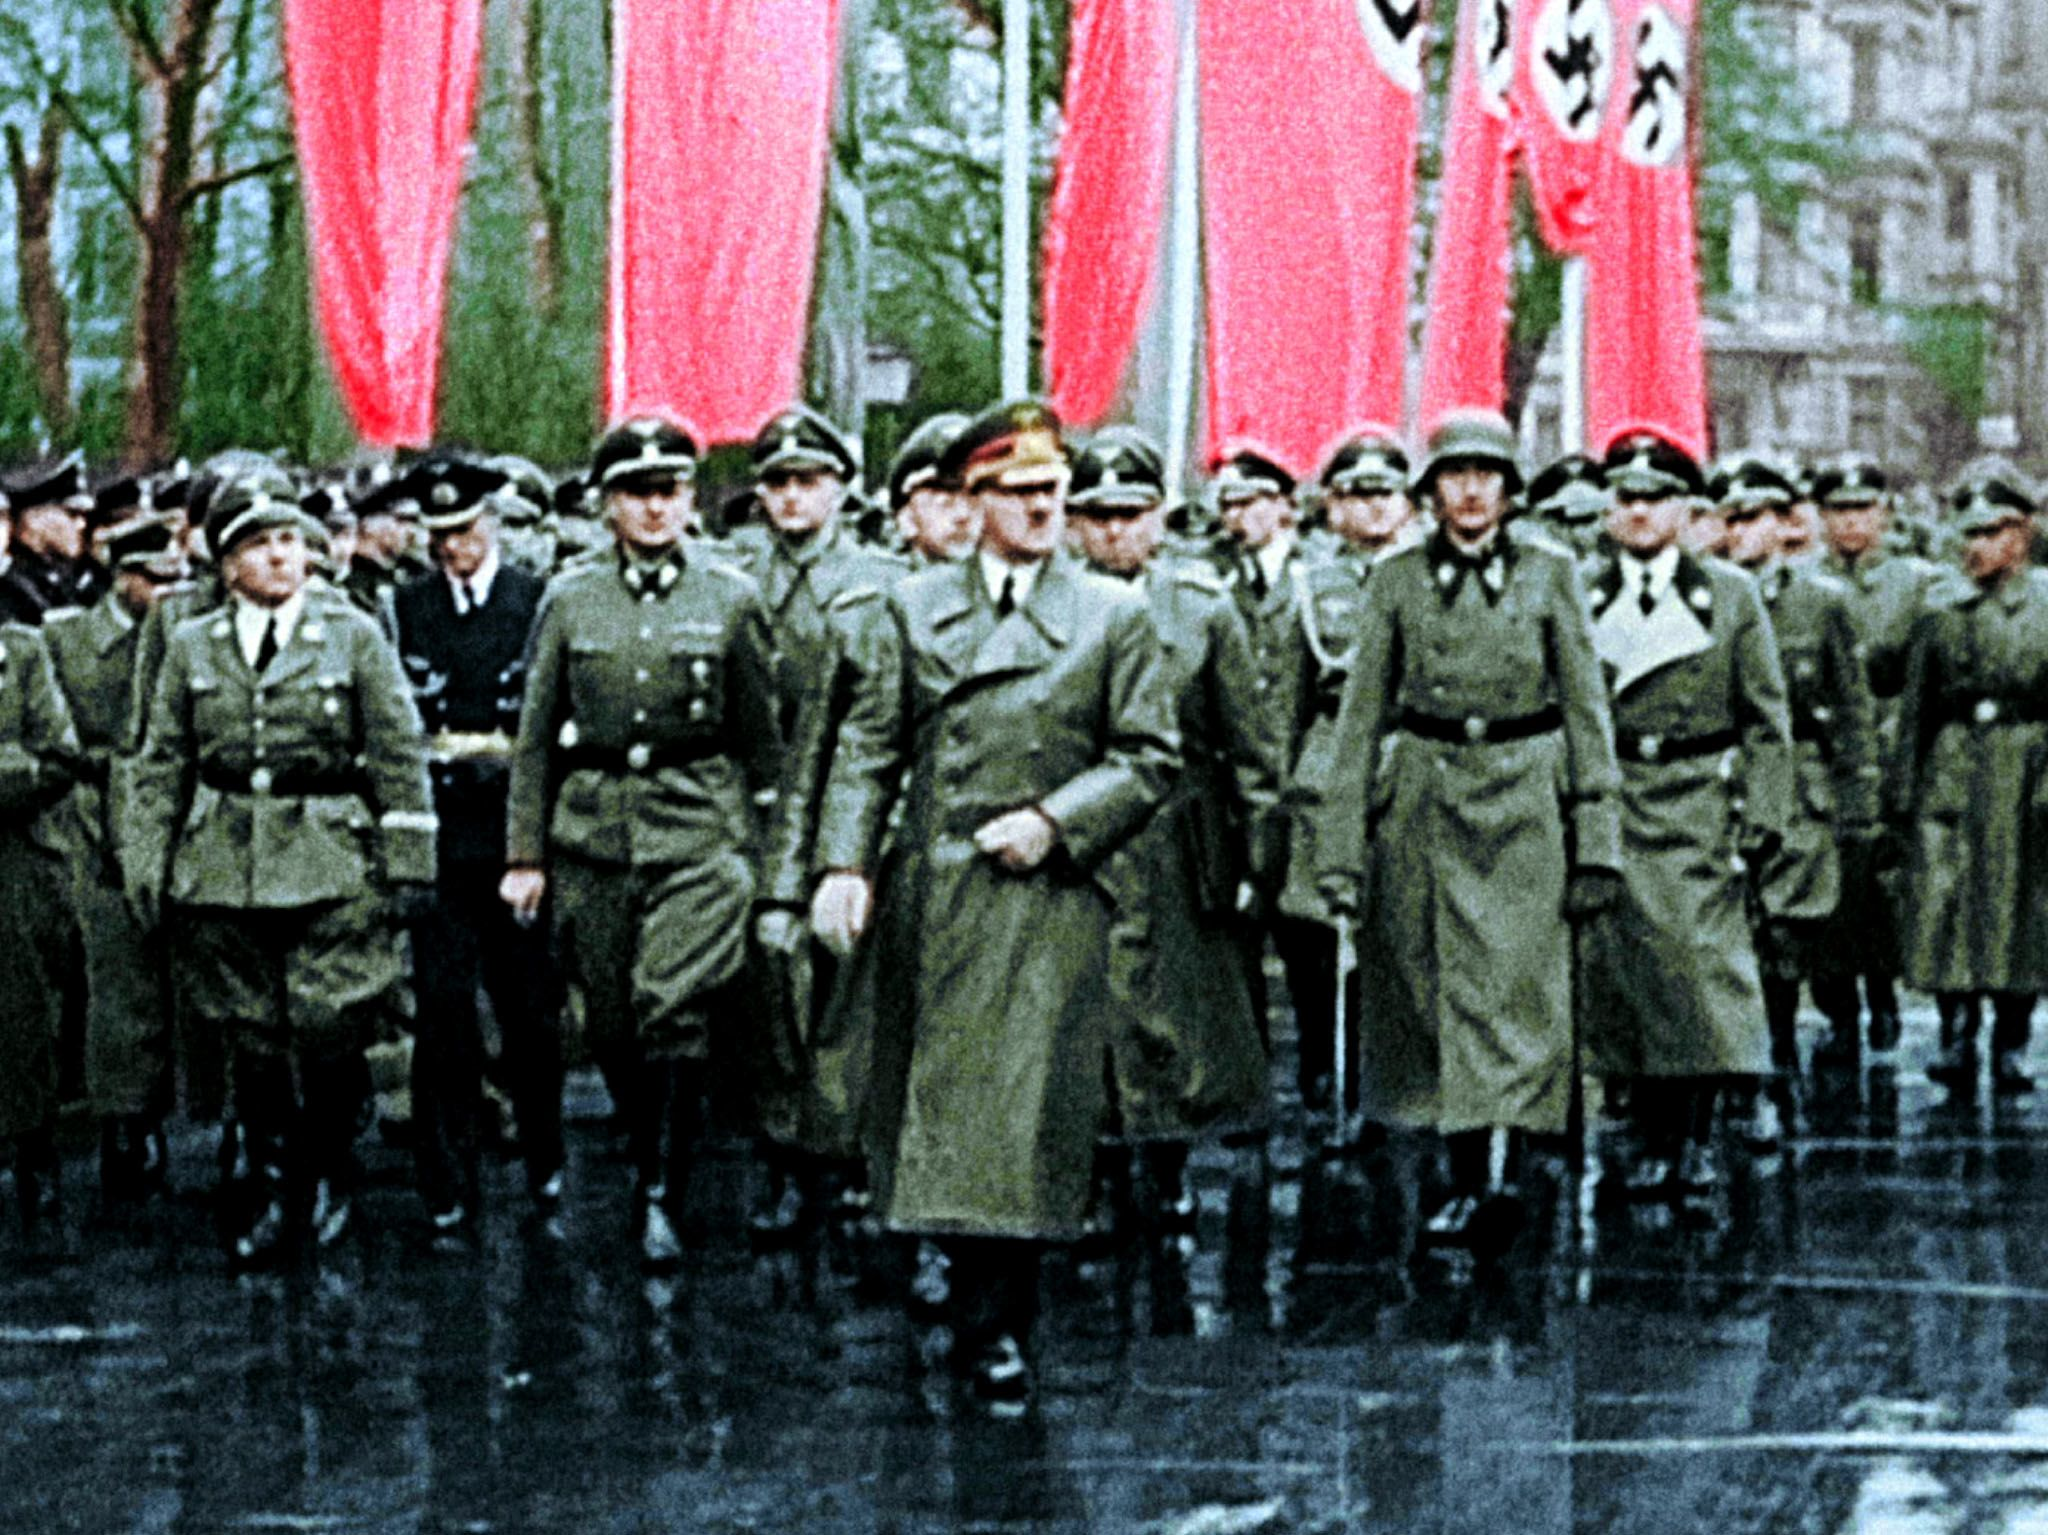 itler and his troops during a parade. This image is from Apocalypse: Hitler Takes On The West. [Photo of the day - March 2021]